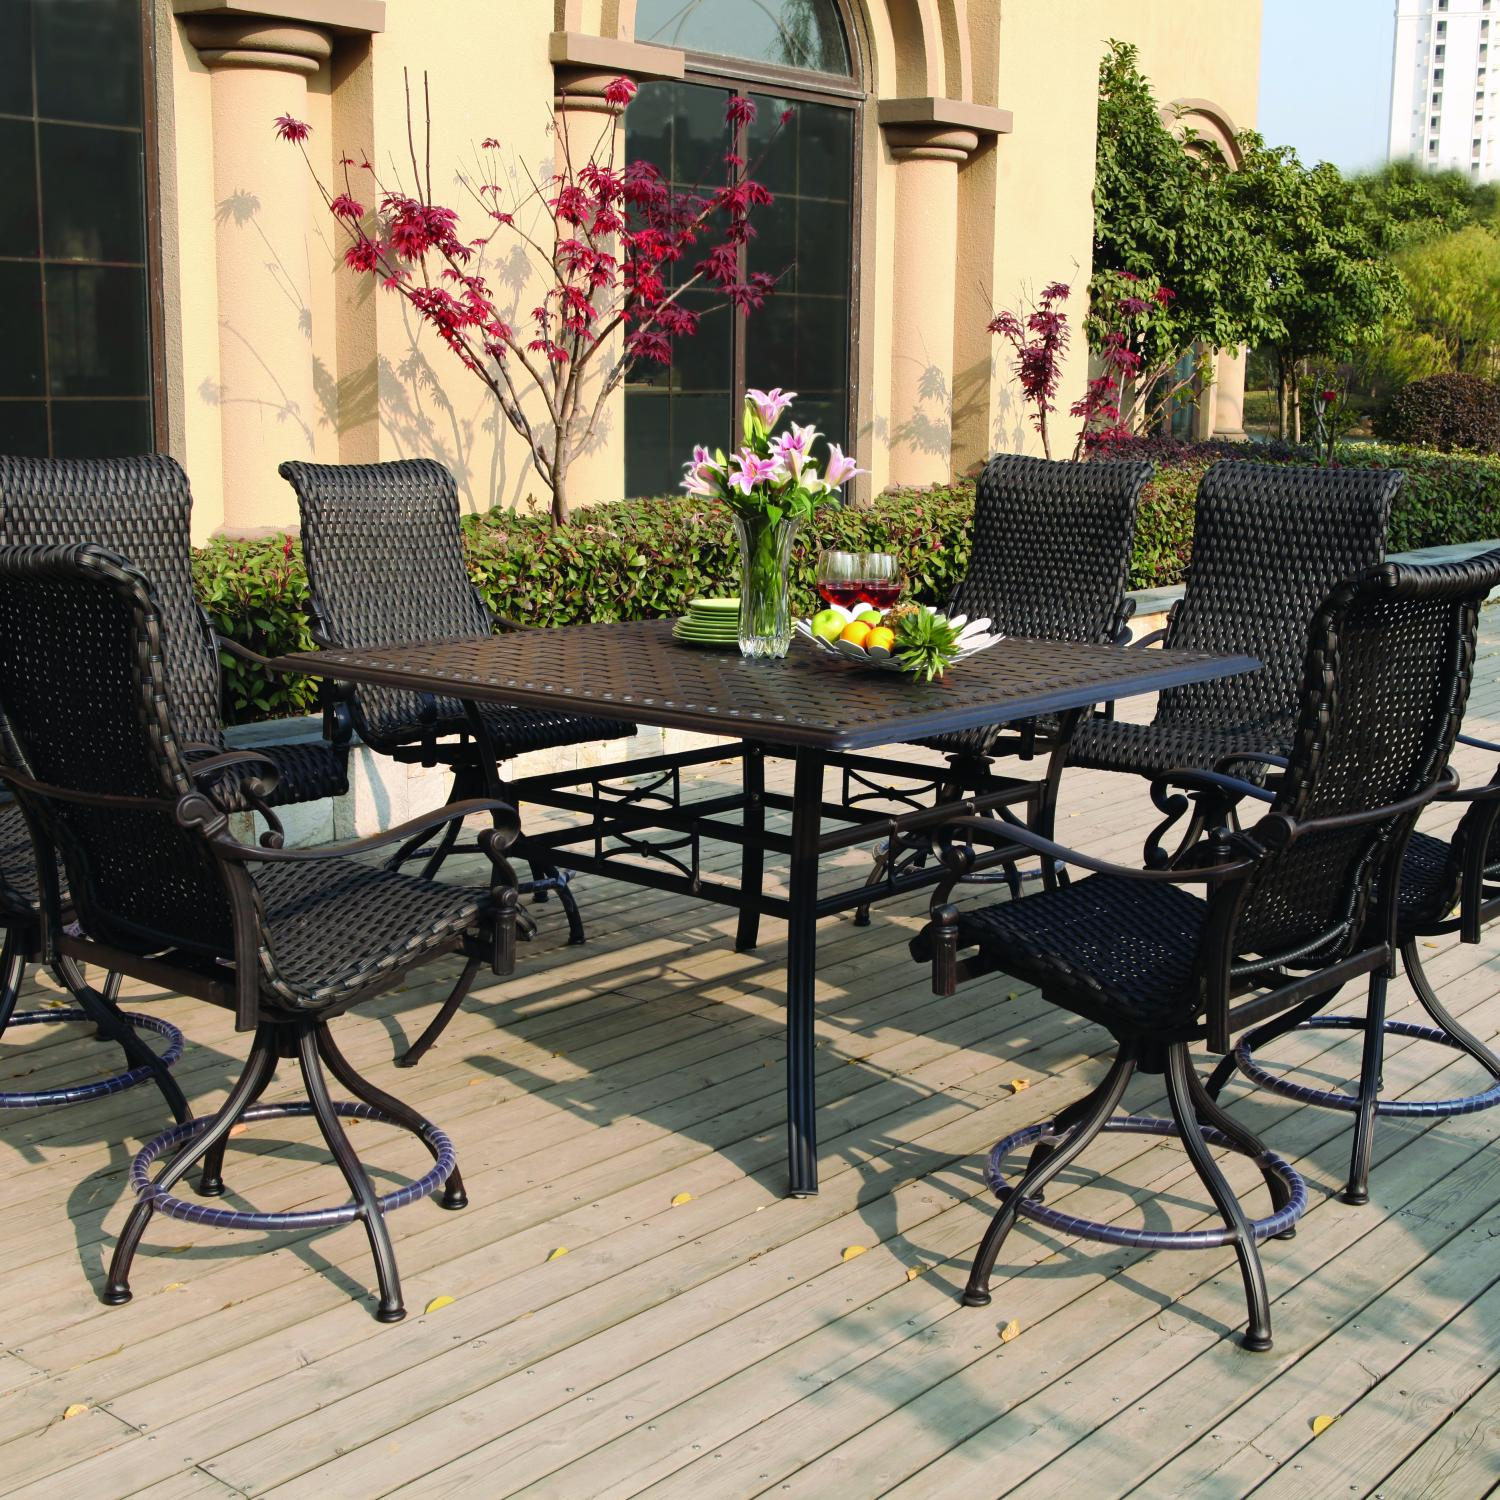 counter height outdoor table and chairs fabulous square patio table furniture ideas counter height patio furniture CGHQKFD